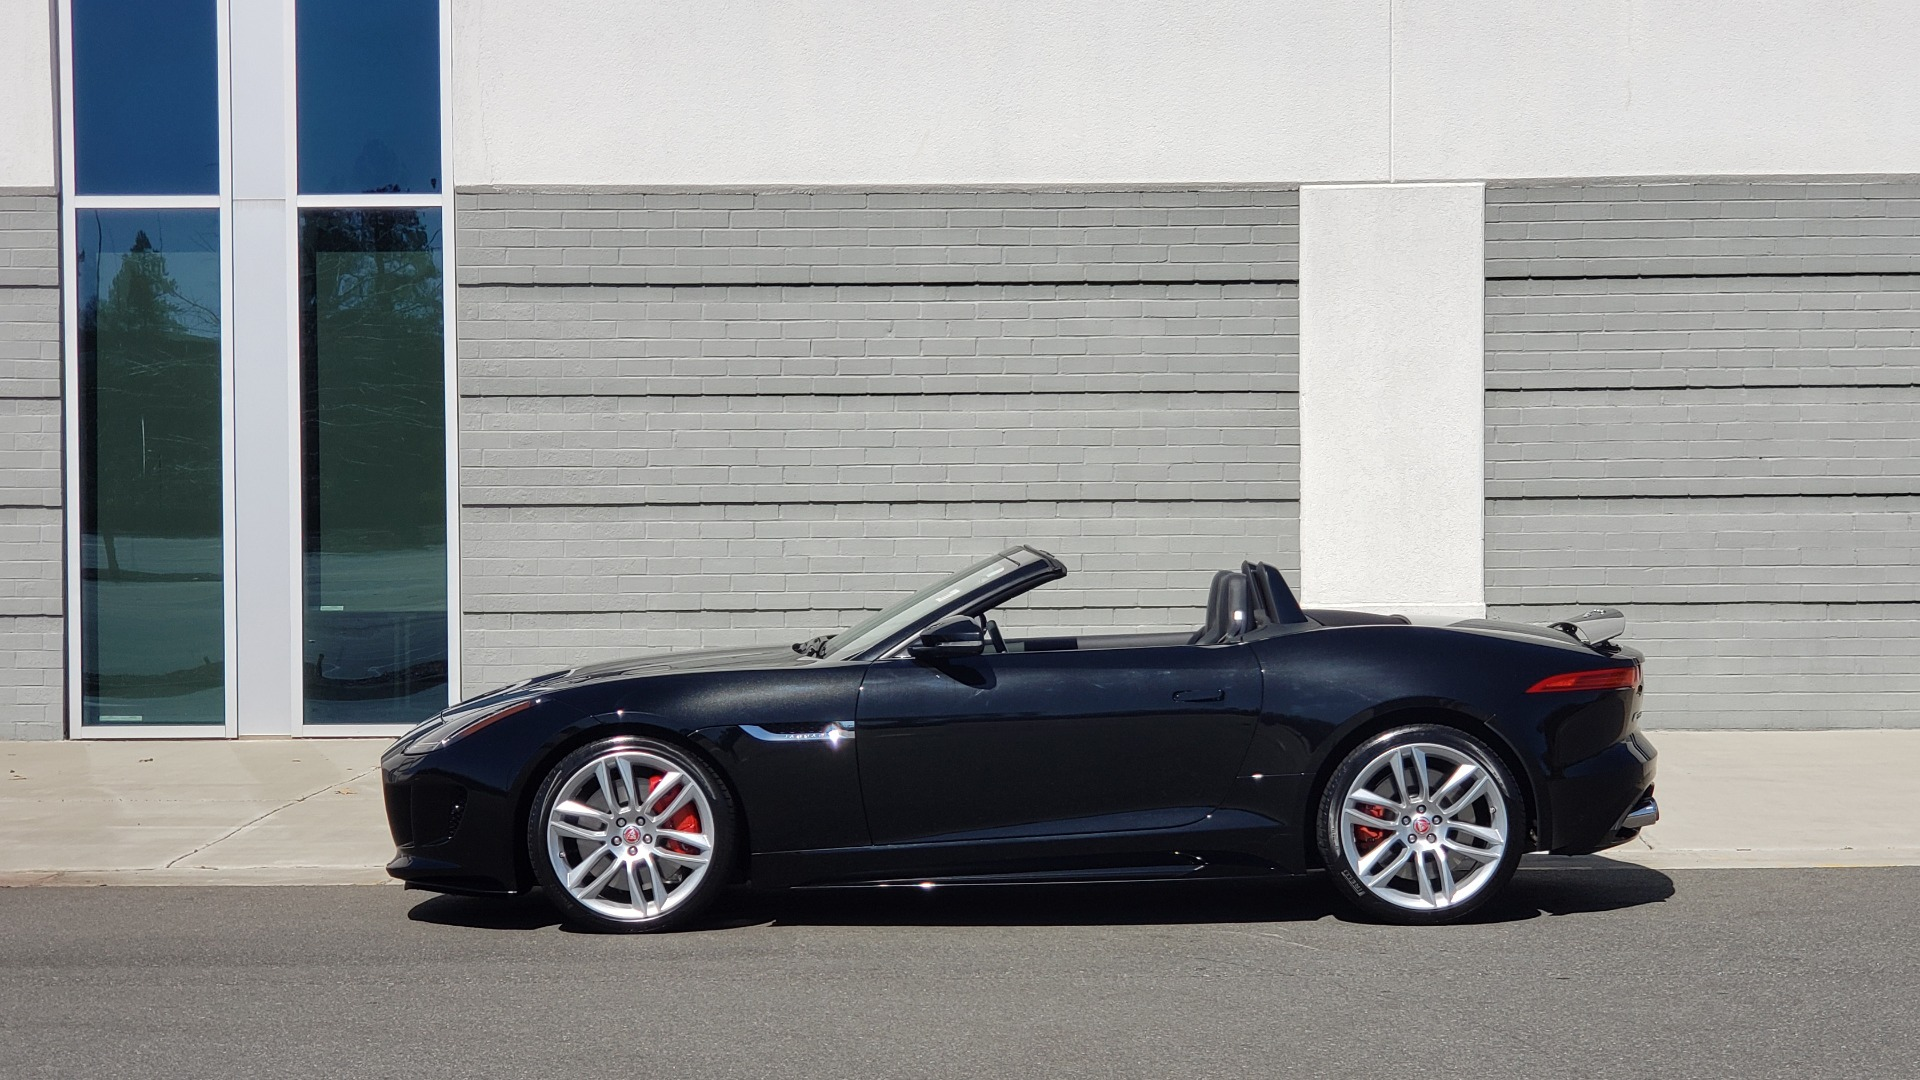 Used 2016 Jaguar F-TYPE R CONVERTIBLE / SC 5.0L 550HP / VISION PACK 3 / BSM / REARVIEW for sale $63,000 at Formula Imports in Charlotte NC 28227 5